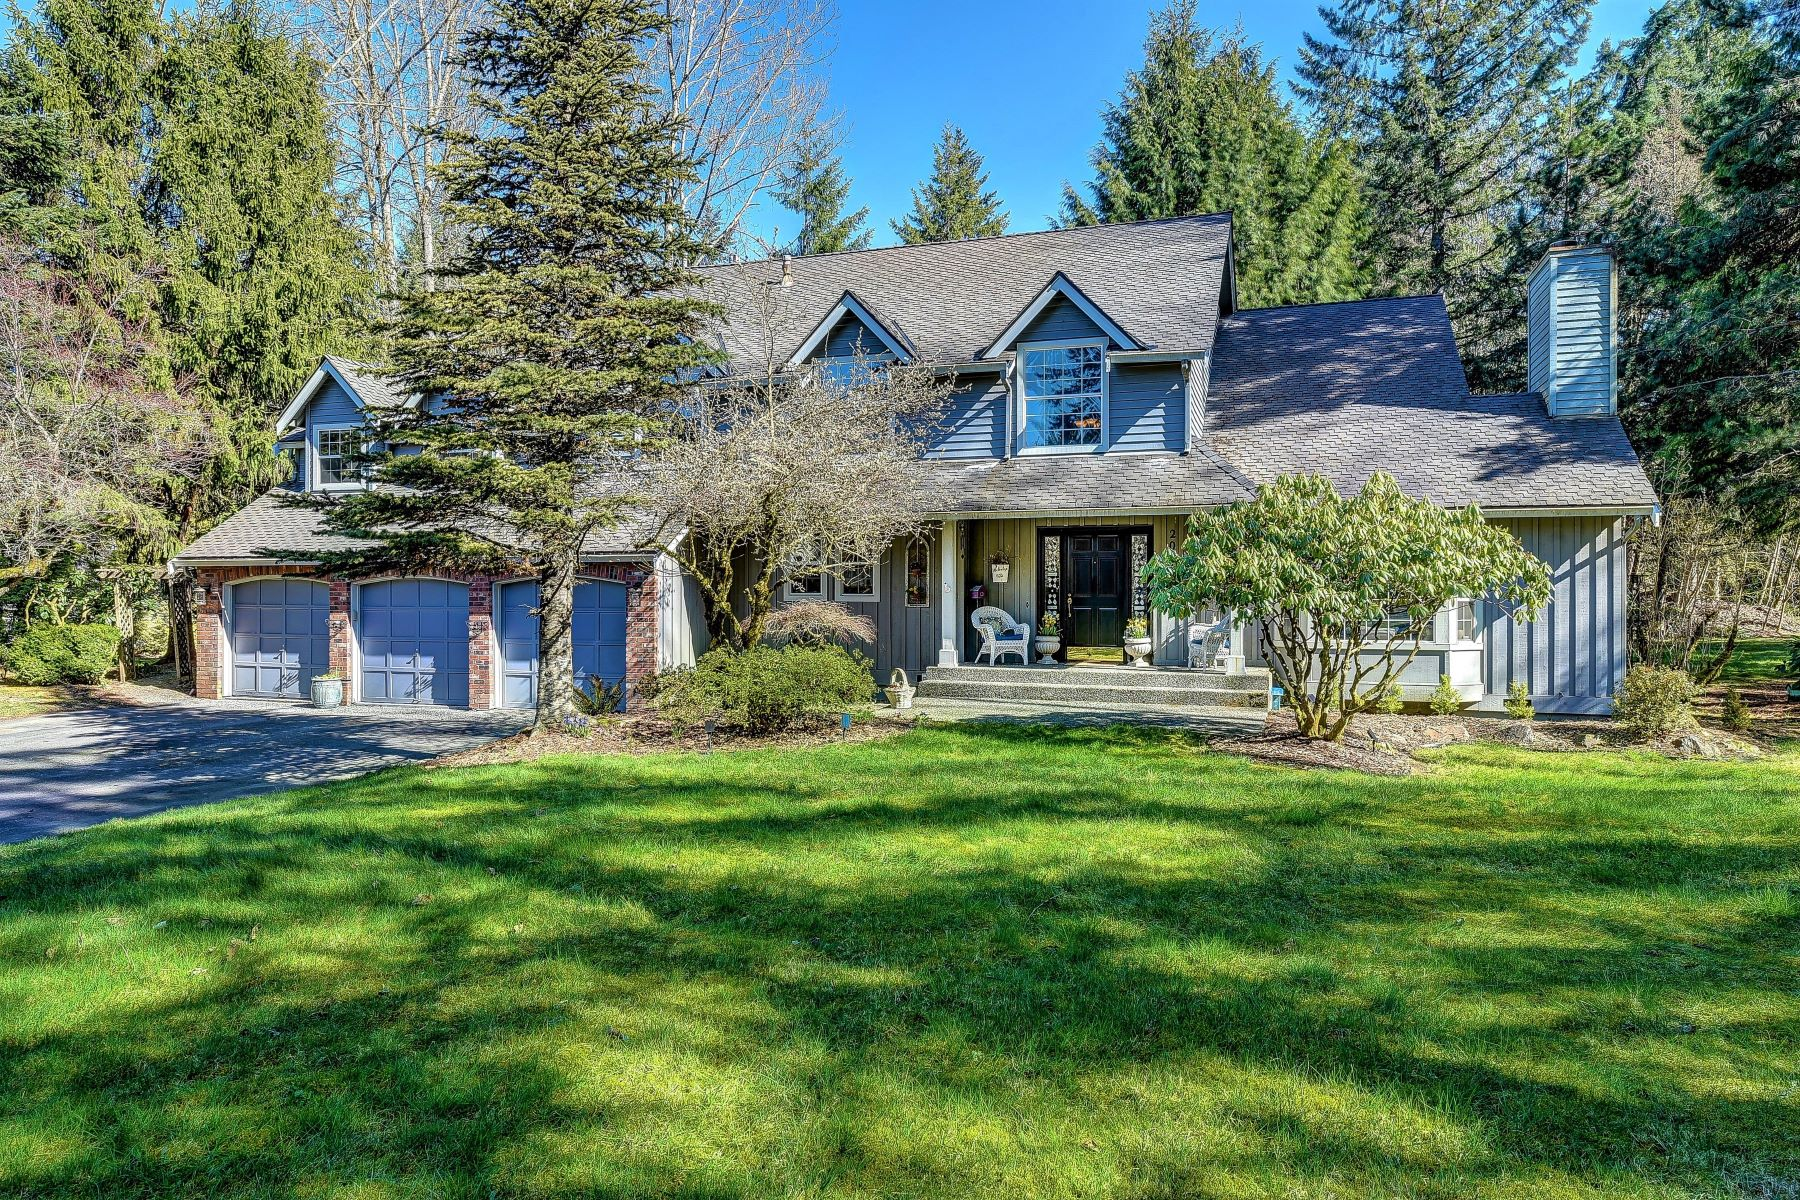 Single Family Homes for Sale at 20210 191st Ave NE, Woodinville, WA 98077 20210 191st Ave NE Woodinville, Washington 98077 United States